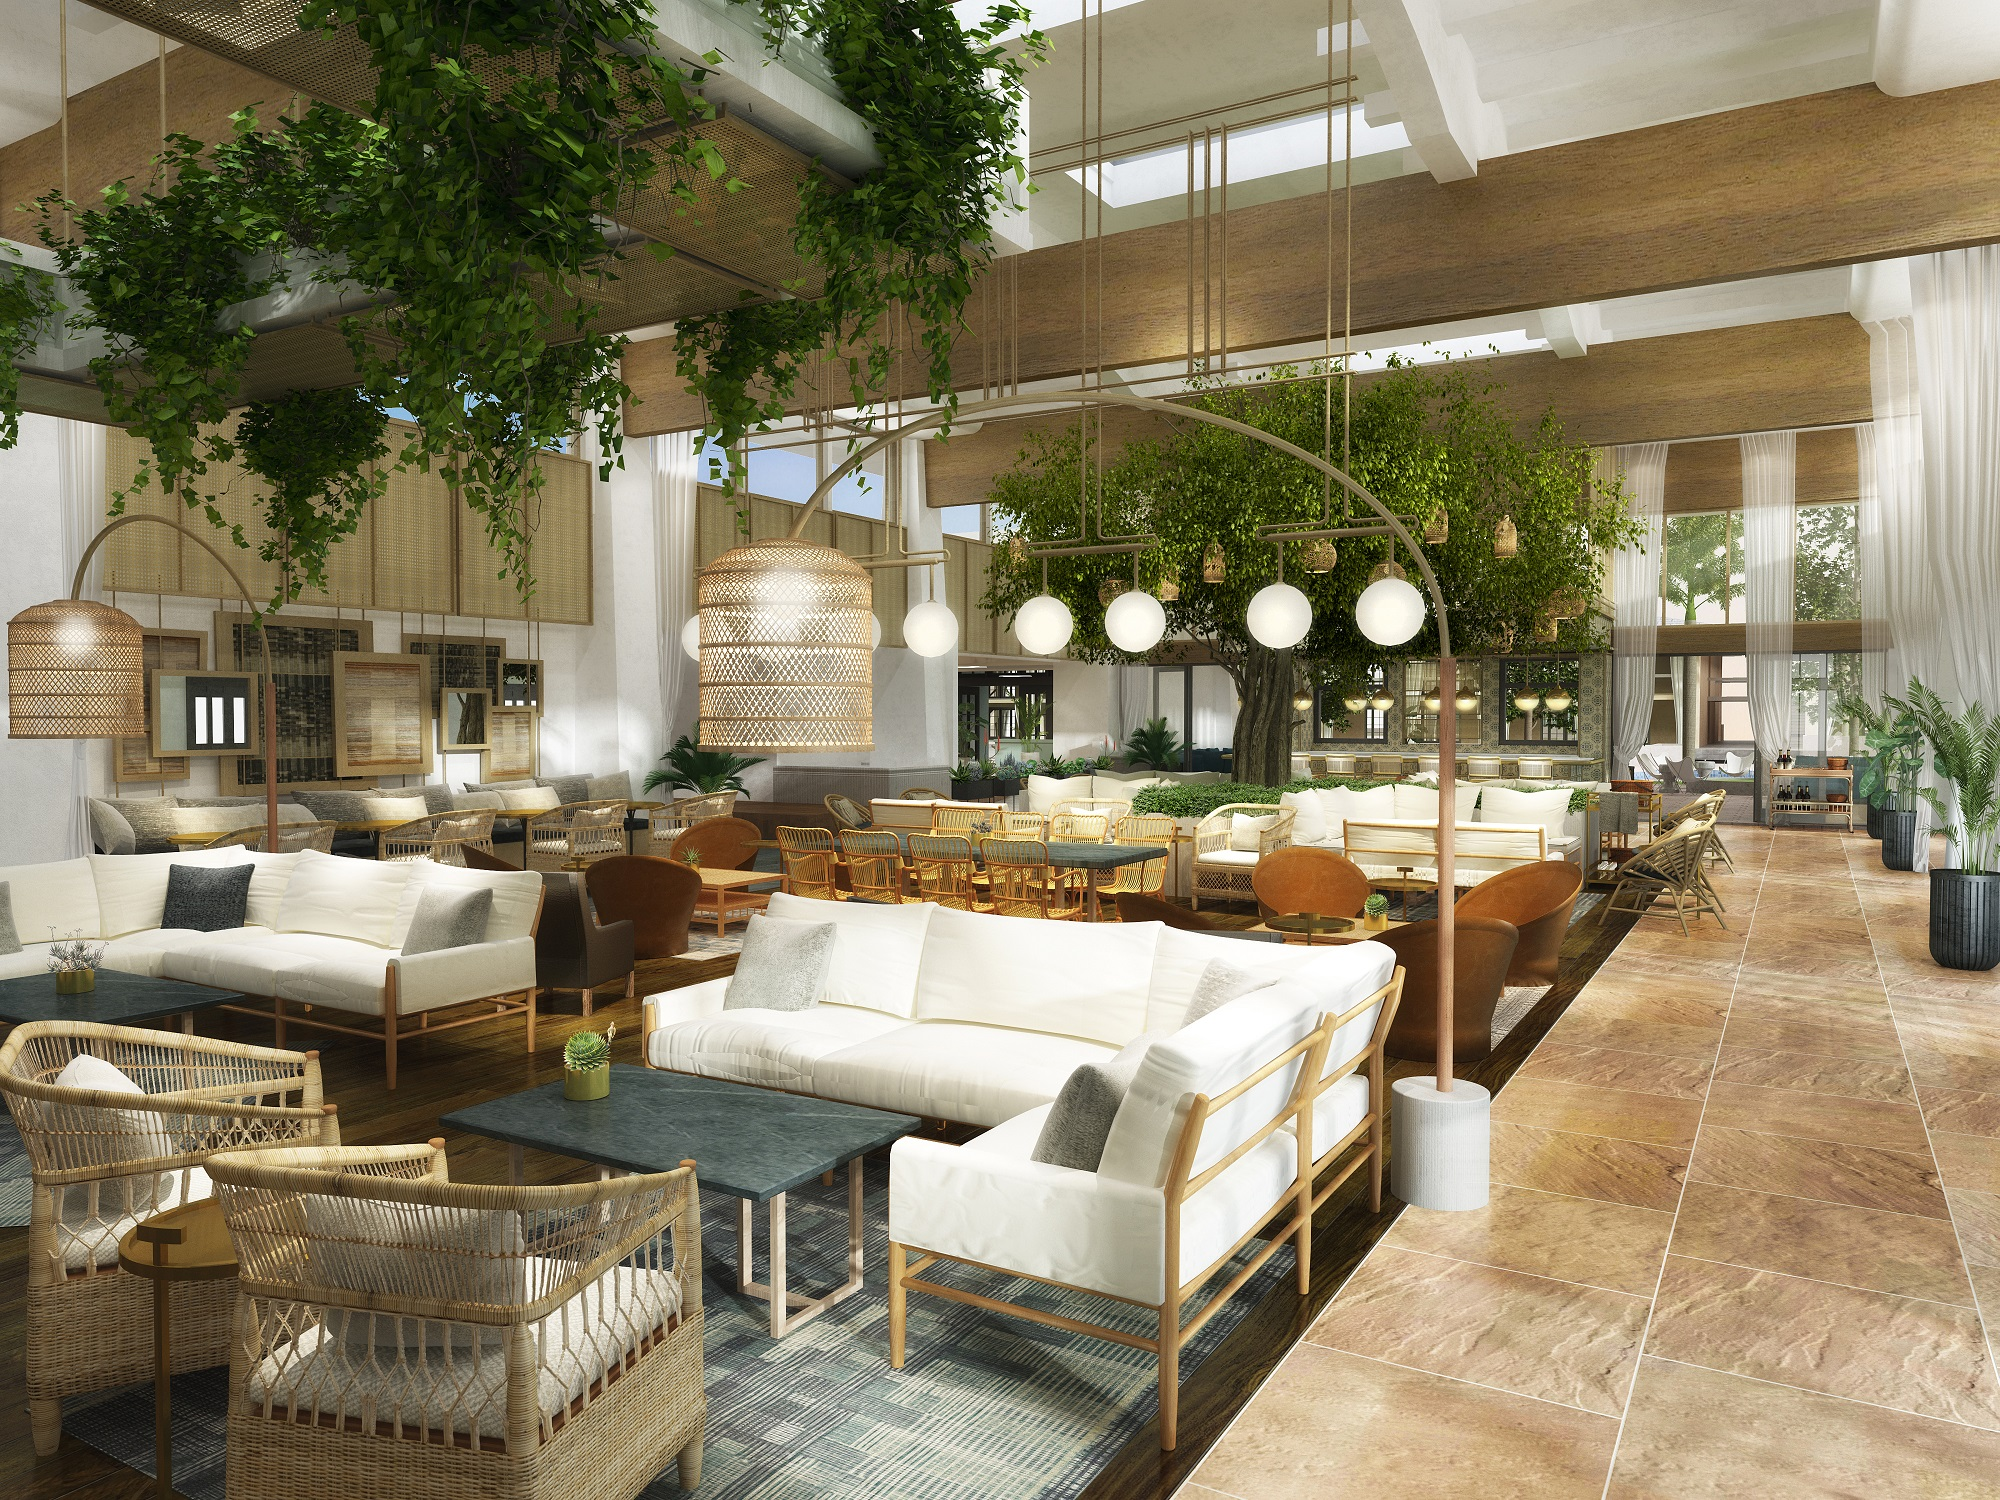 The first phase of the renovation includes all public spaces, including the resort's main lobby.